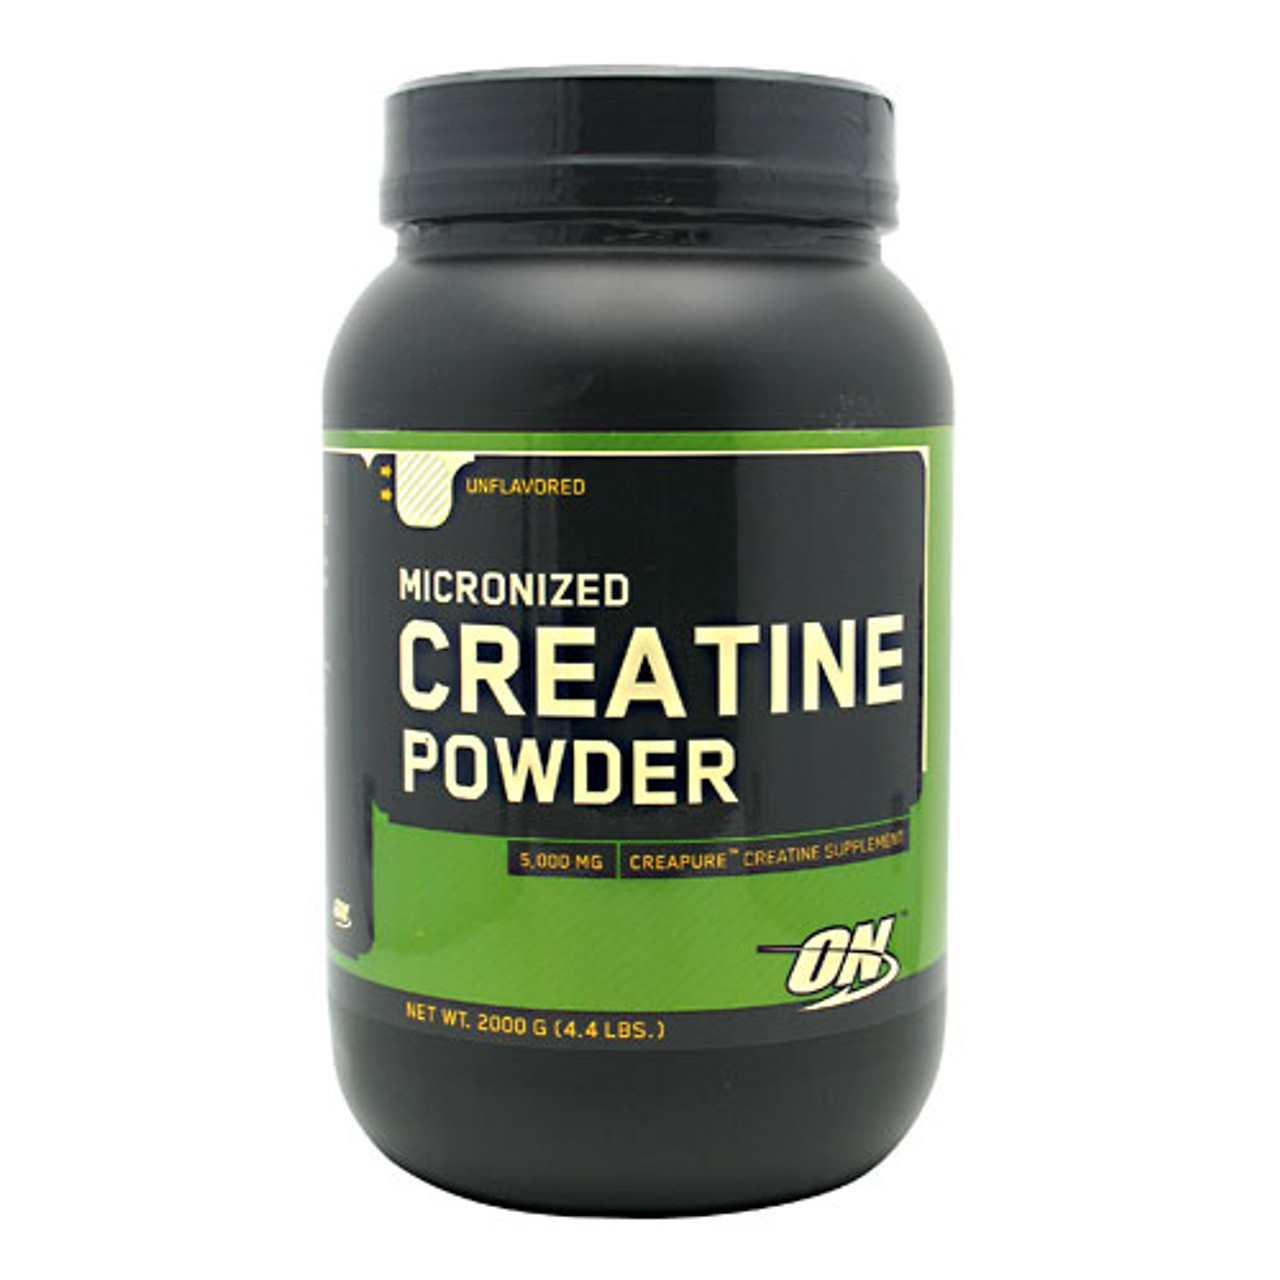 Creatine Powder 2000g Optimum